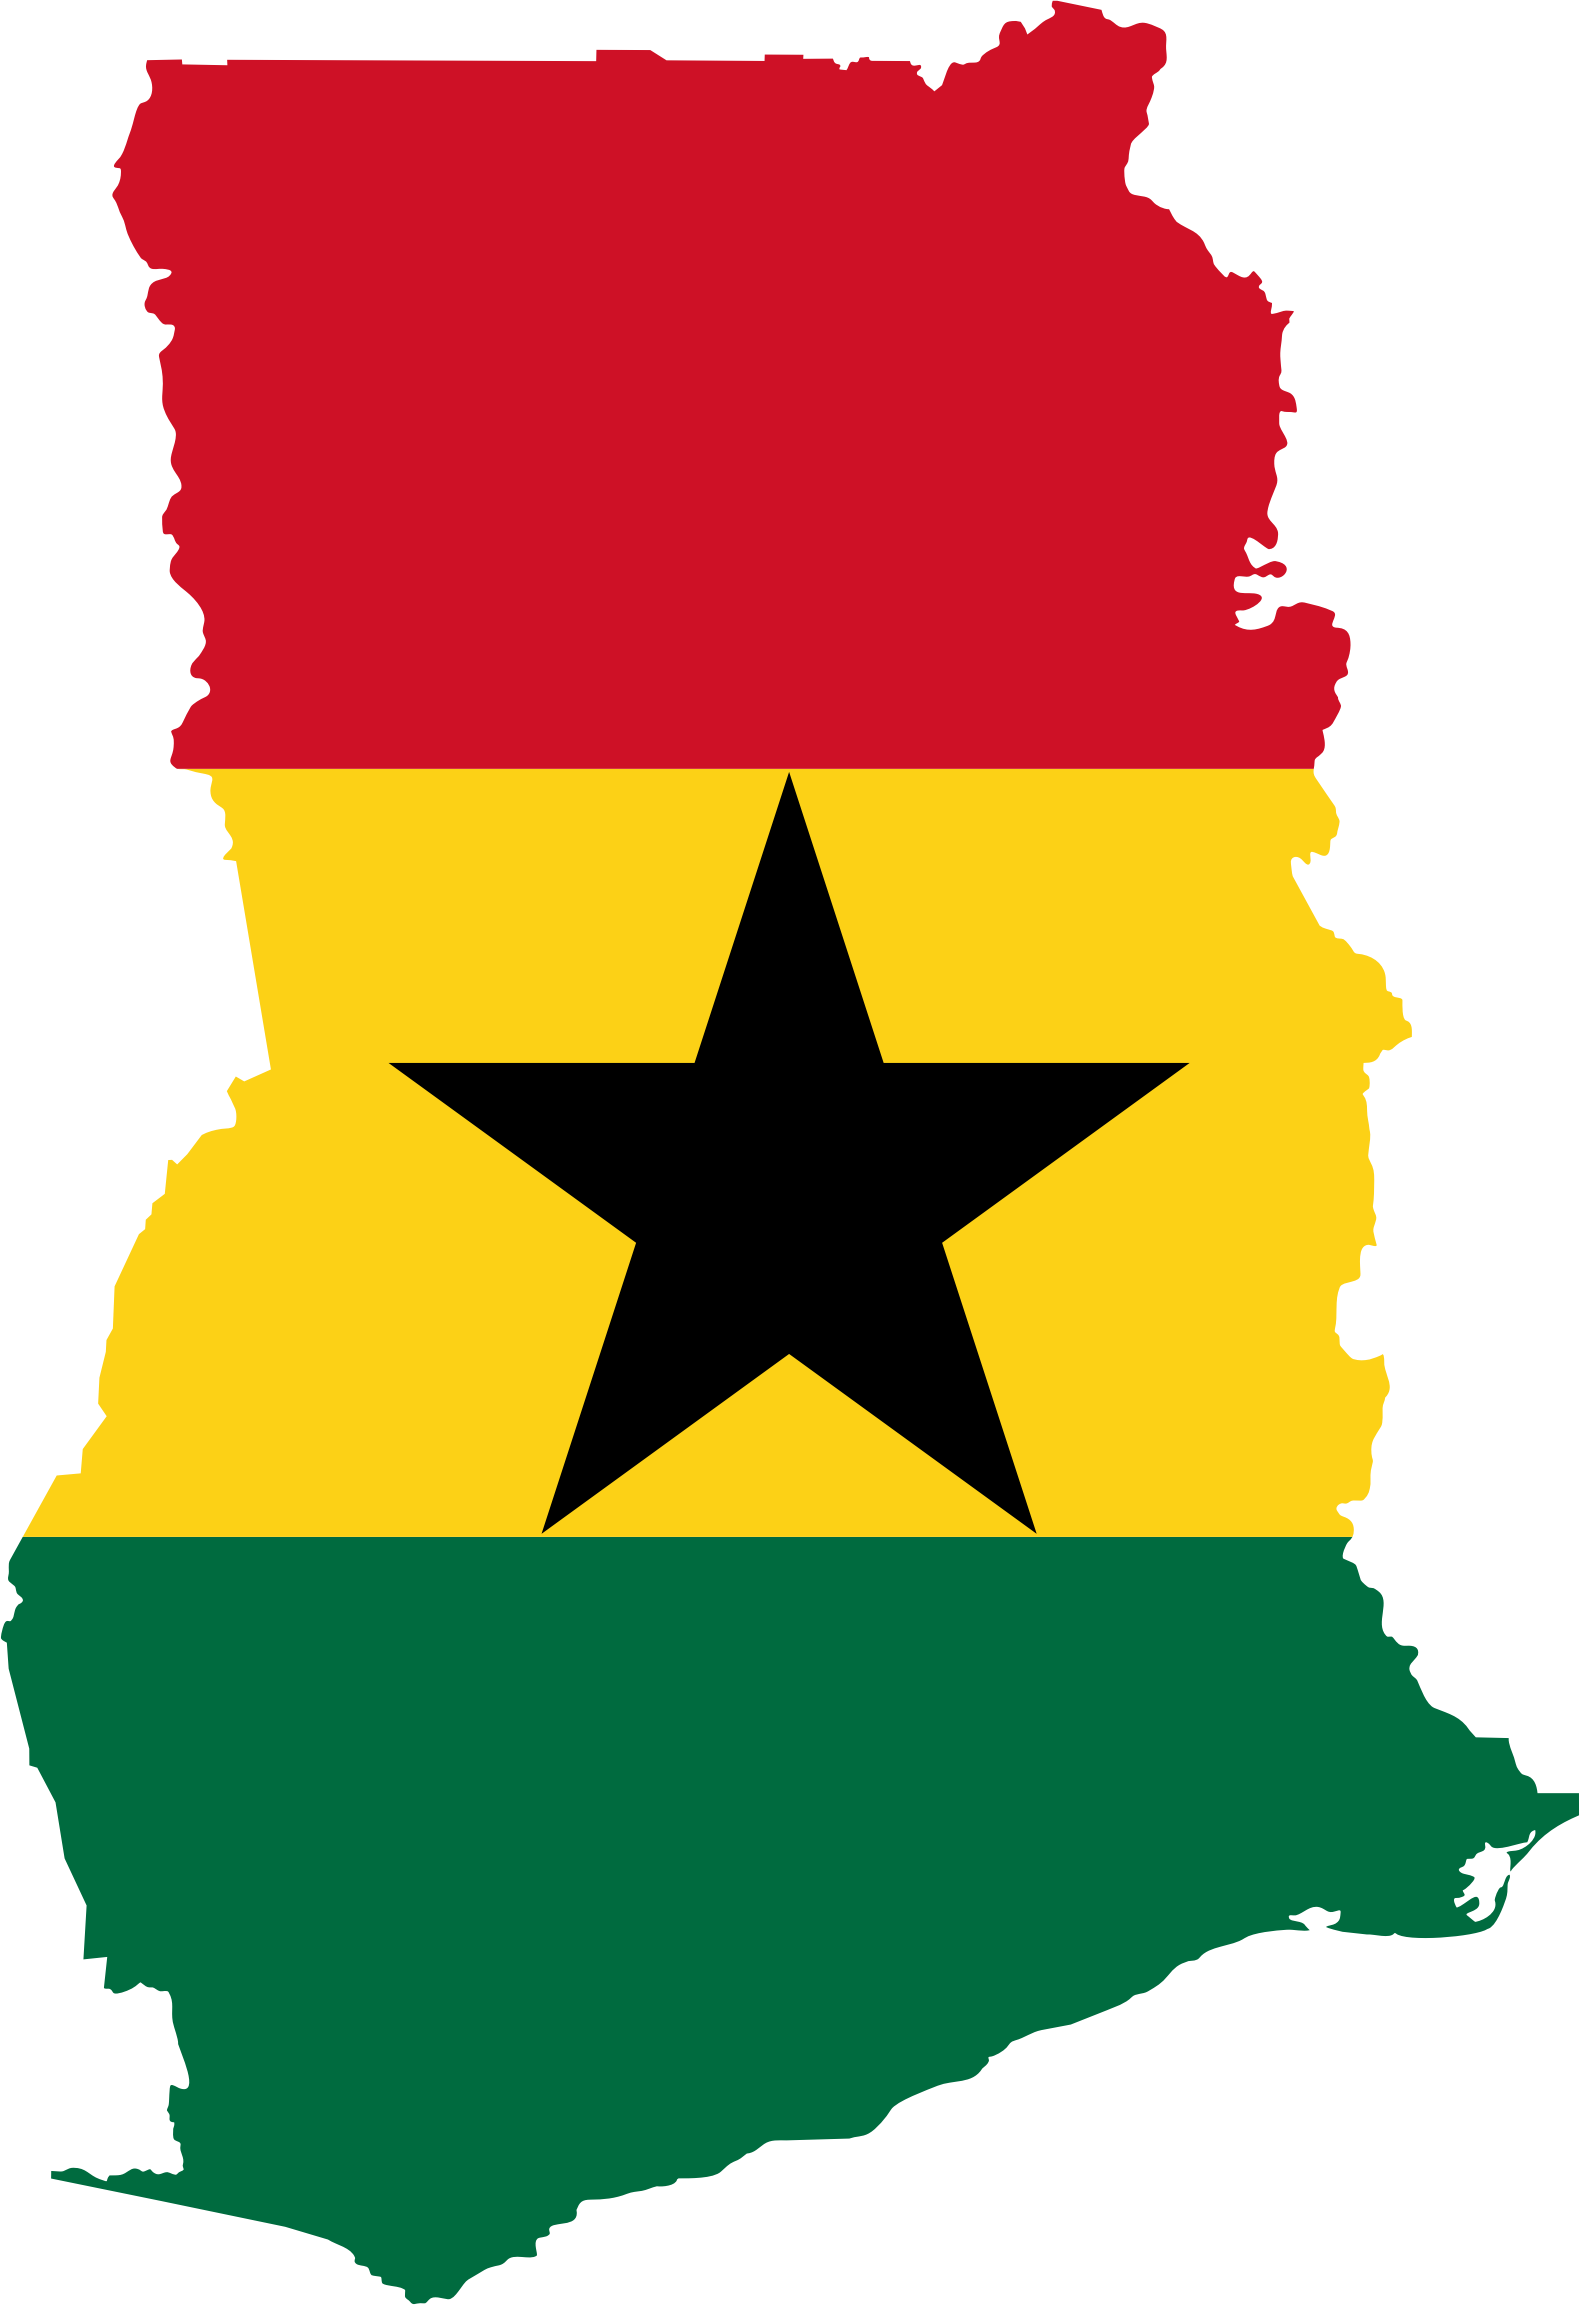 Ghana Flag Map by GDJ